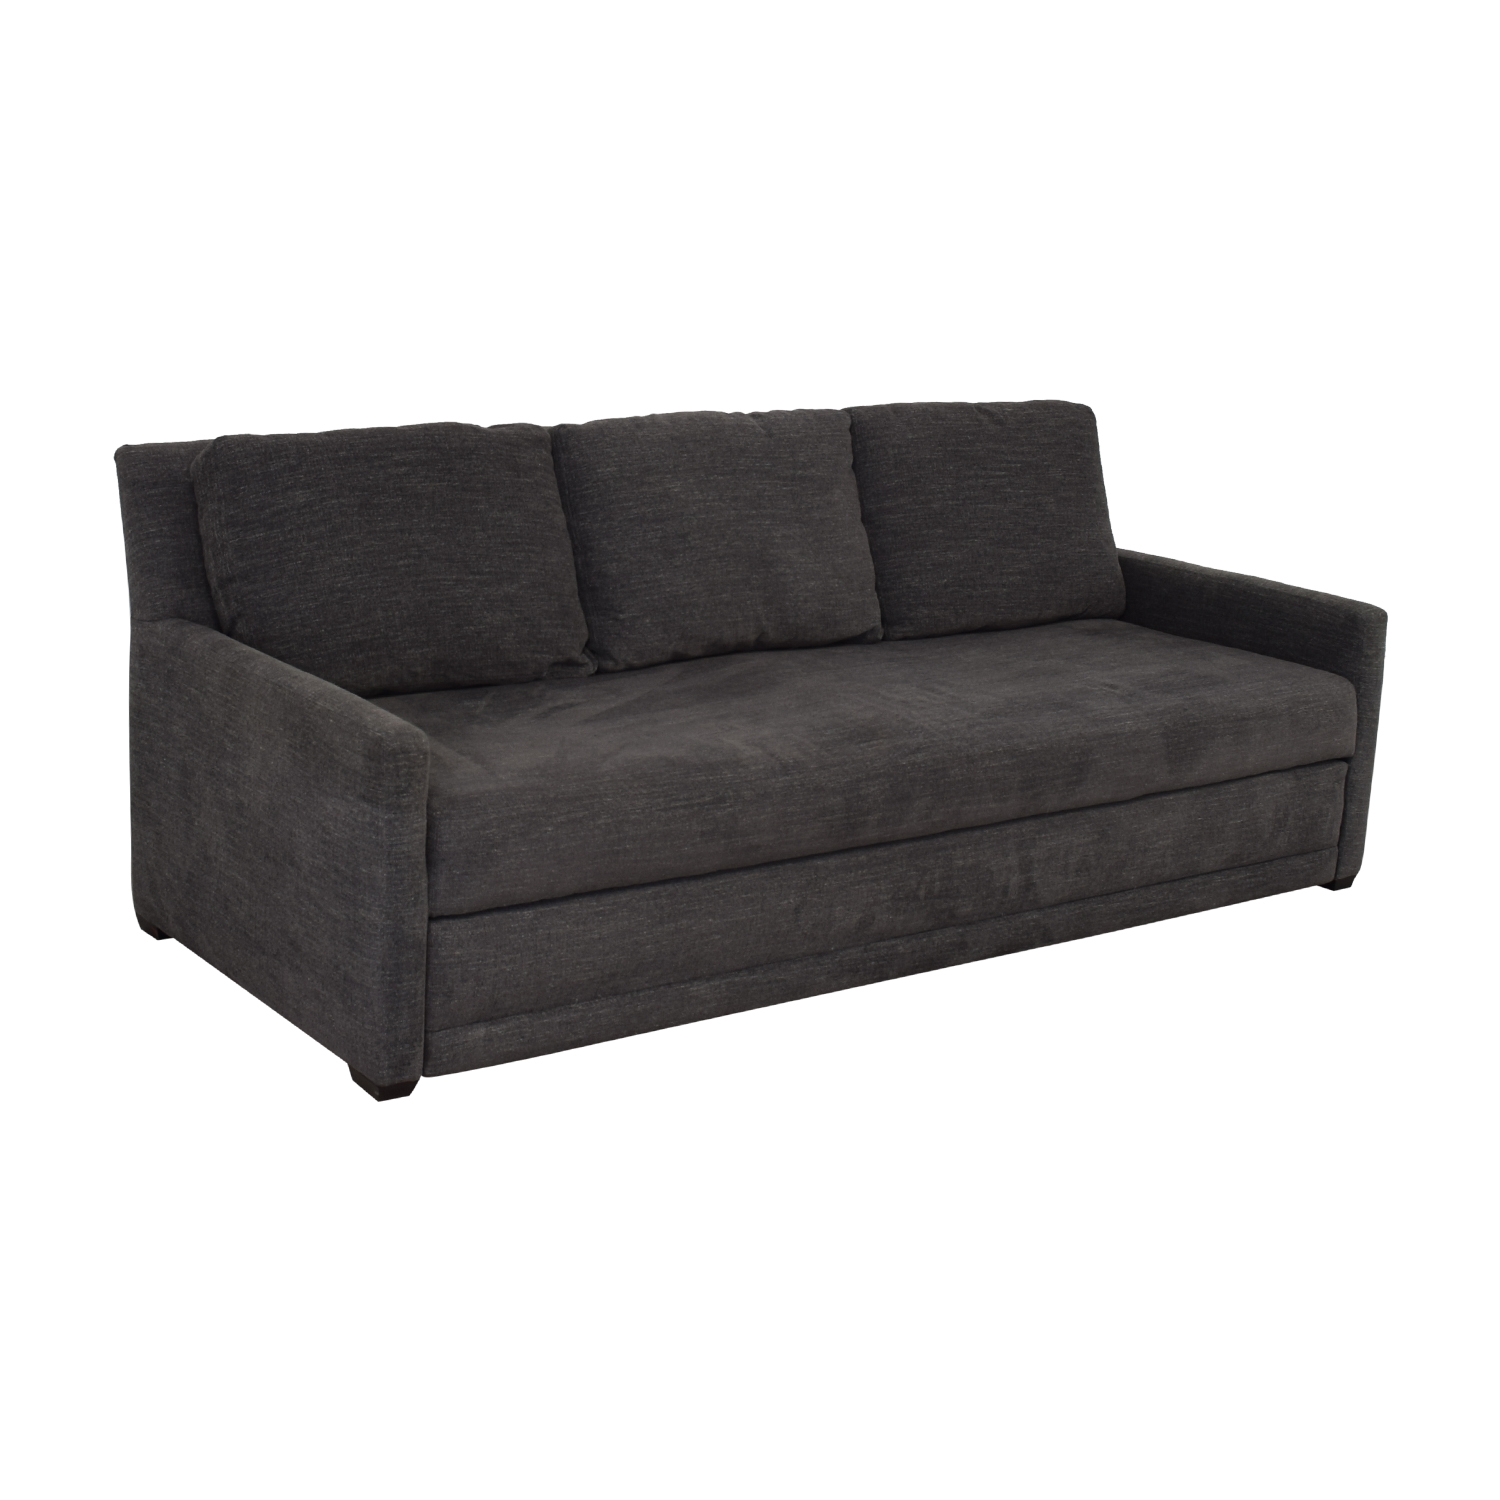 Crate & Barrel Crate & Barrel Reston Queen Trundle Sleeper Sofa price